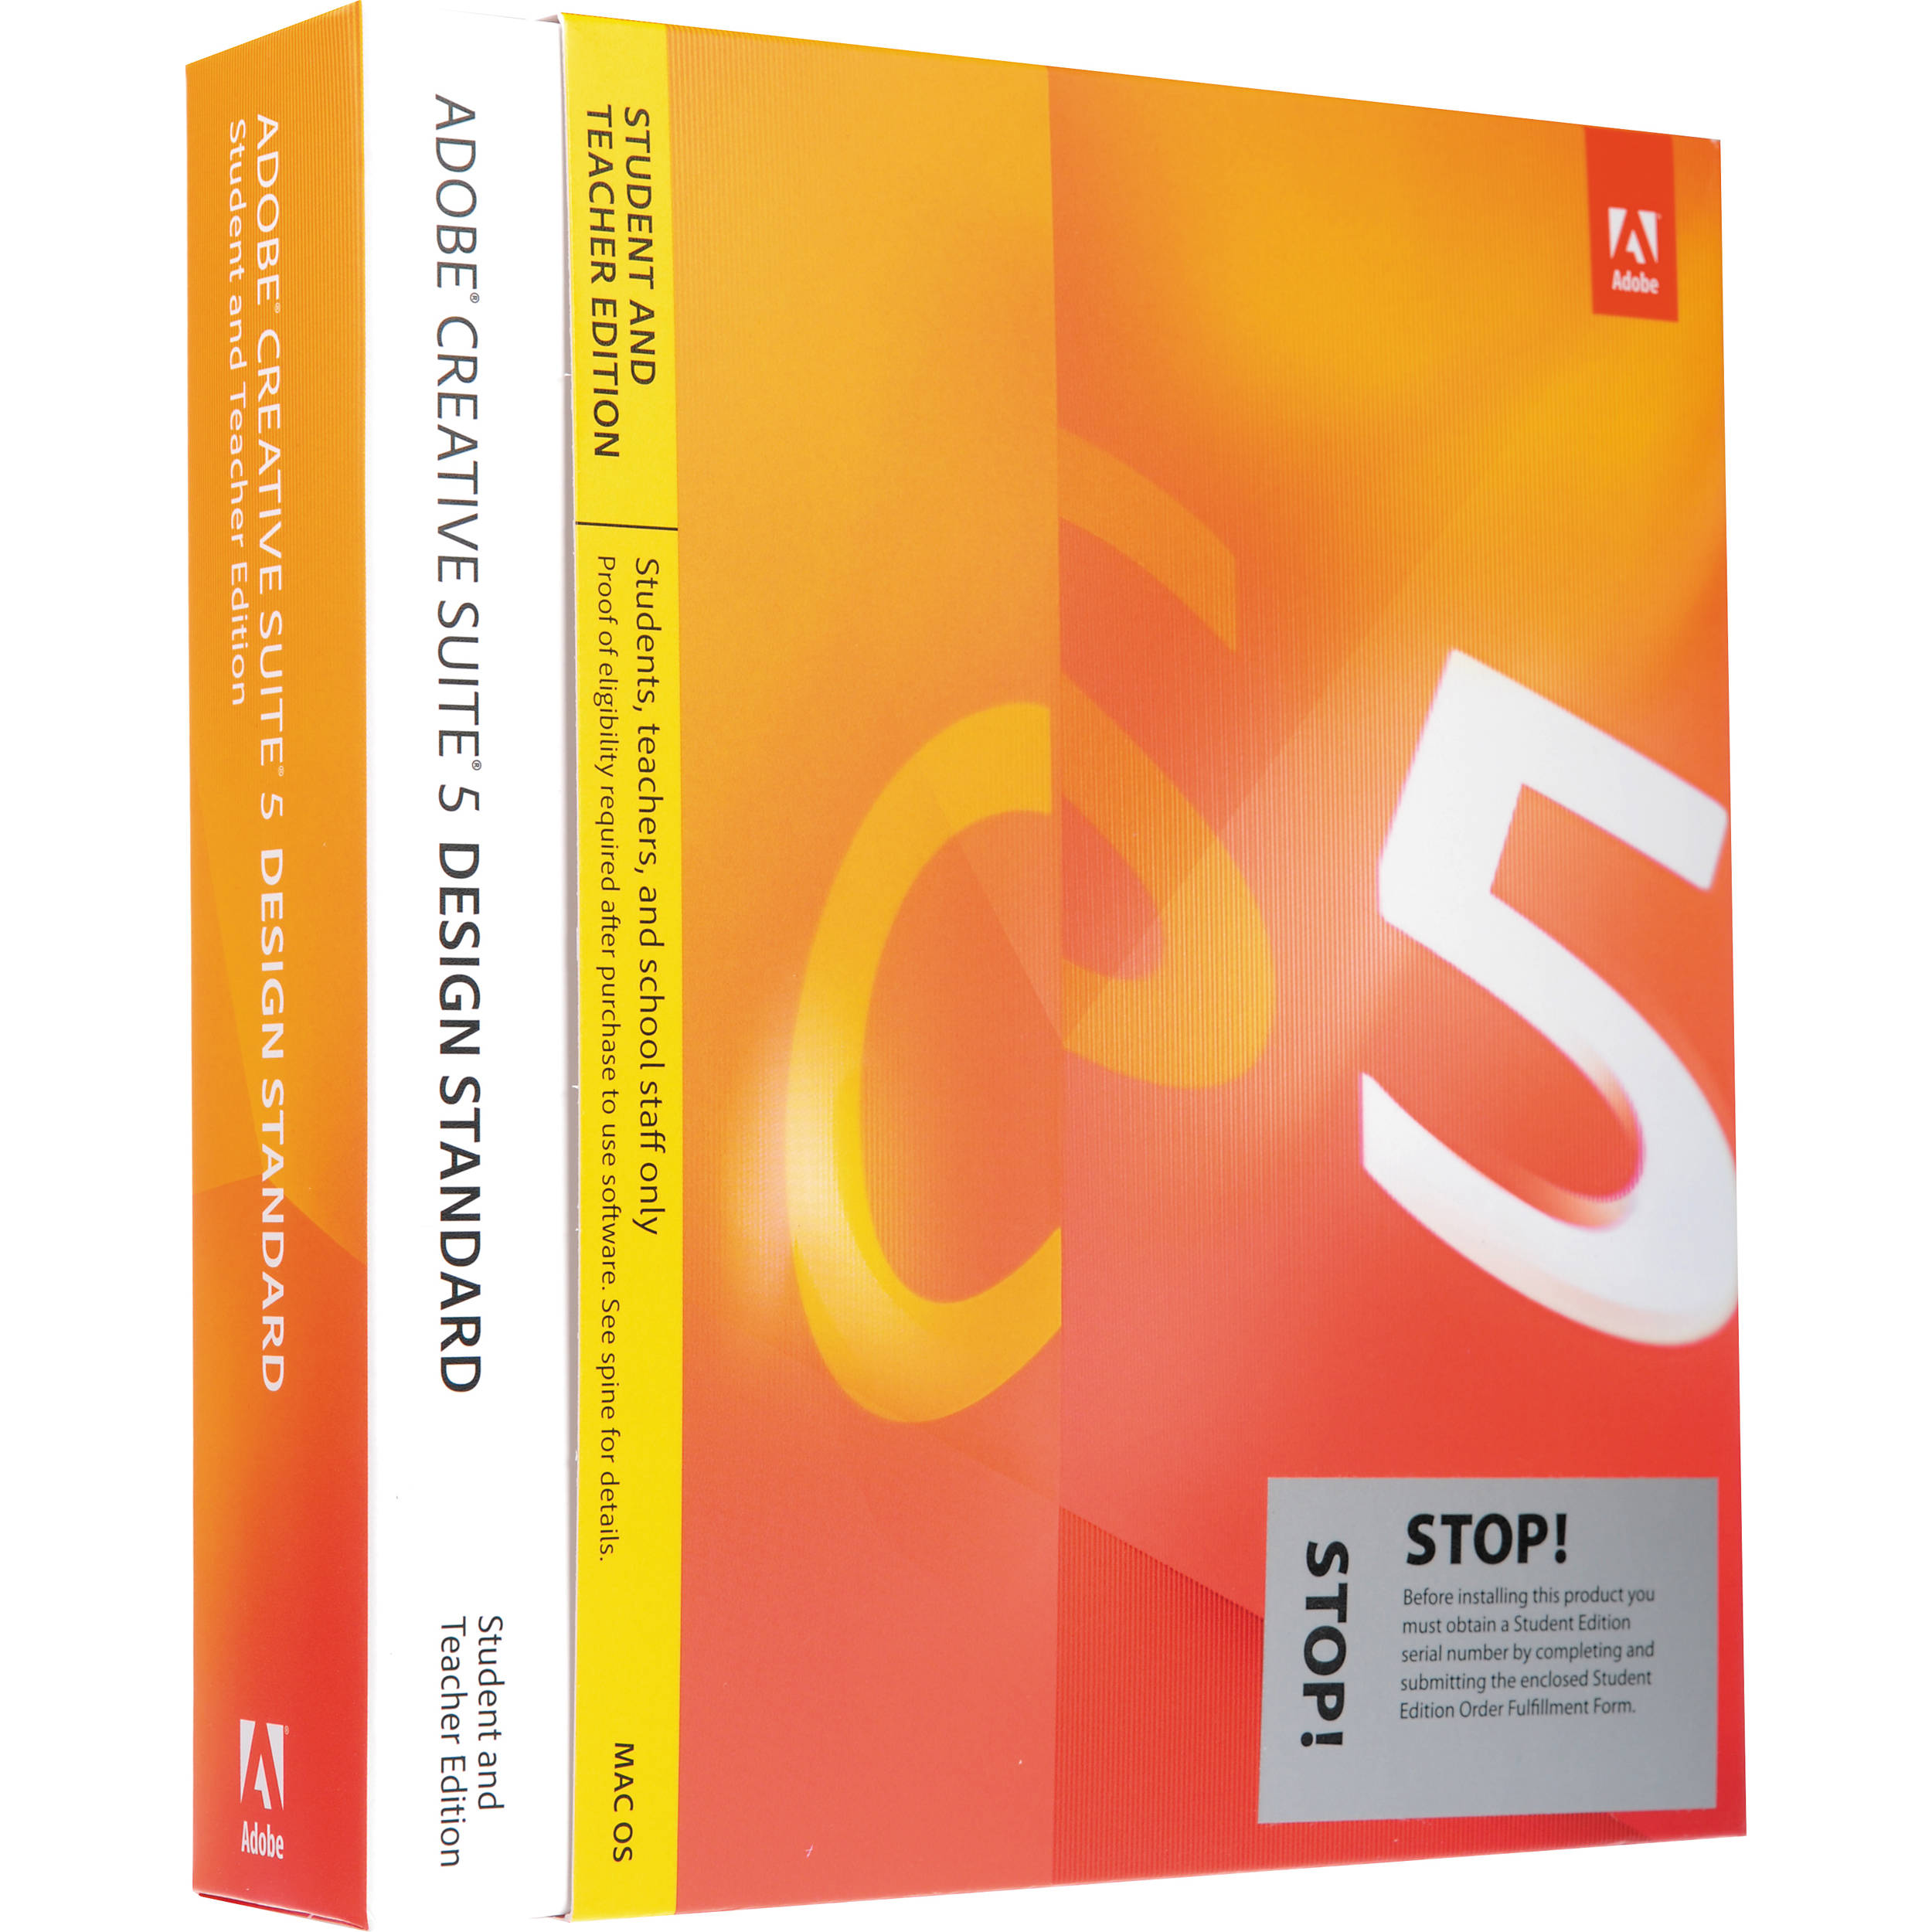 How much is a Adobe CS5.5 Design Standard Student And Teacher Edition?